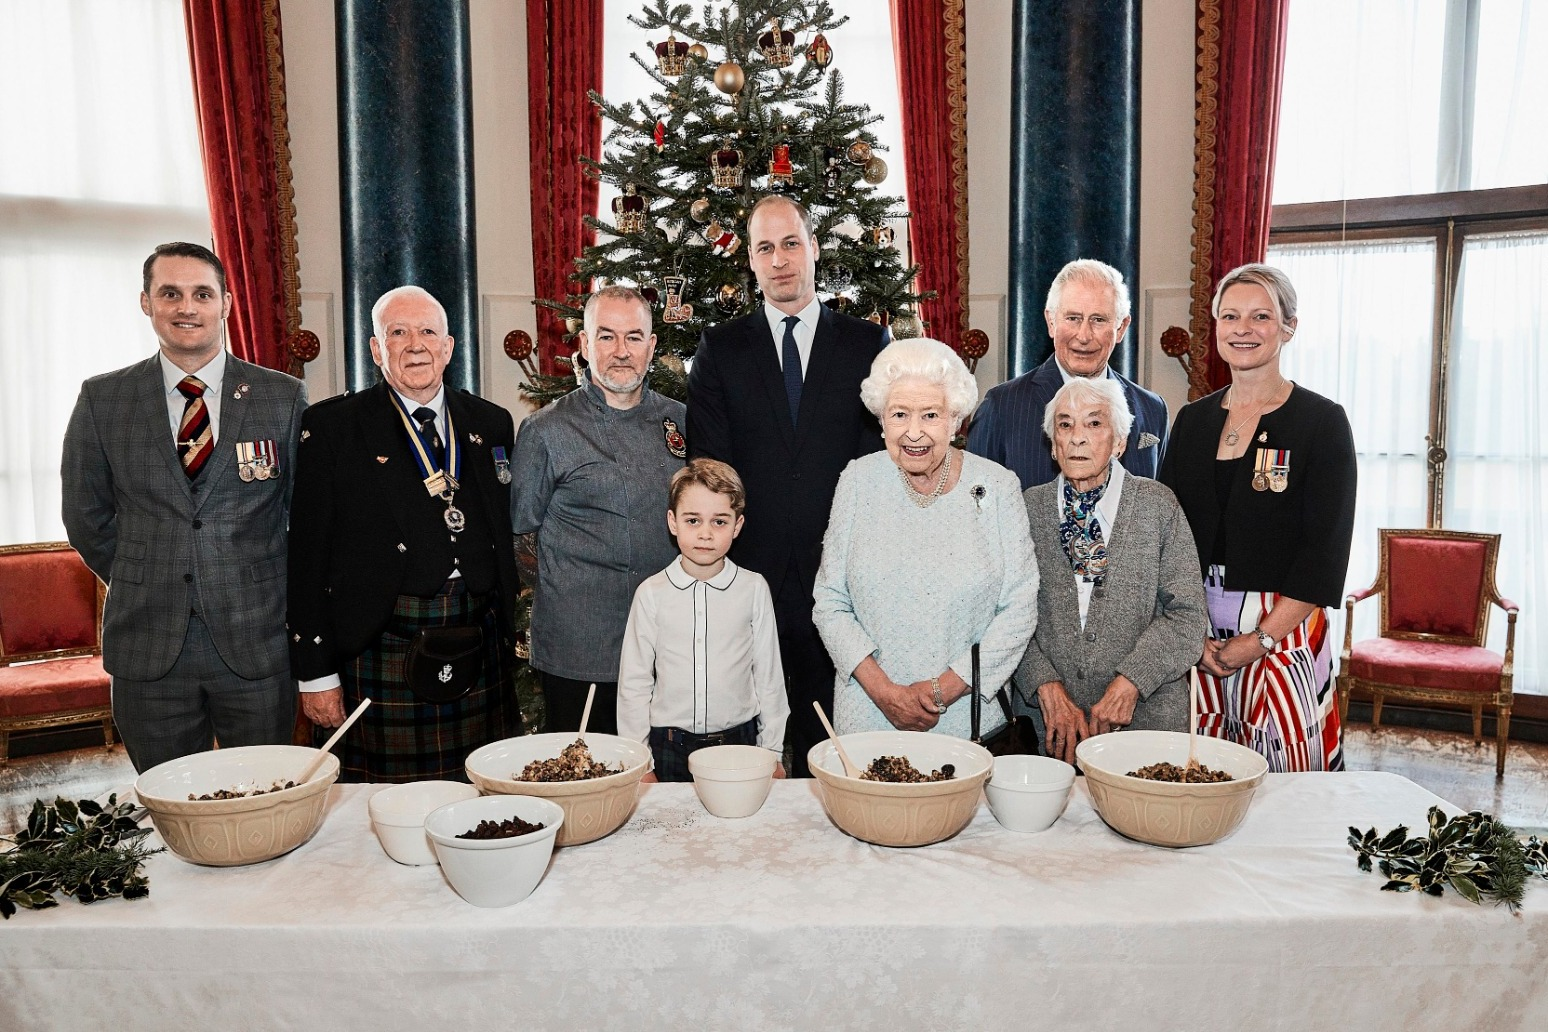 QUEEN JOINS FUTURE GENERATIONS AND BAKES FESTIVE TREATS AT BUCKINGHAM PALACE